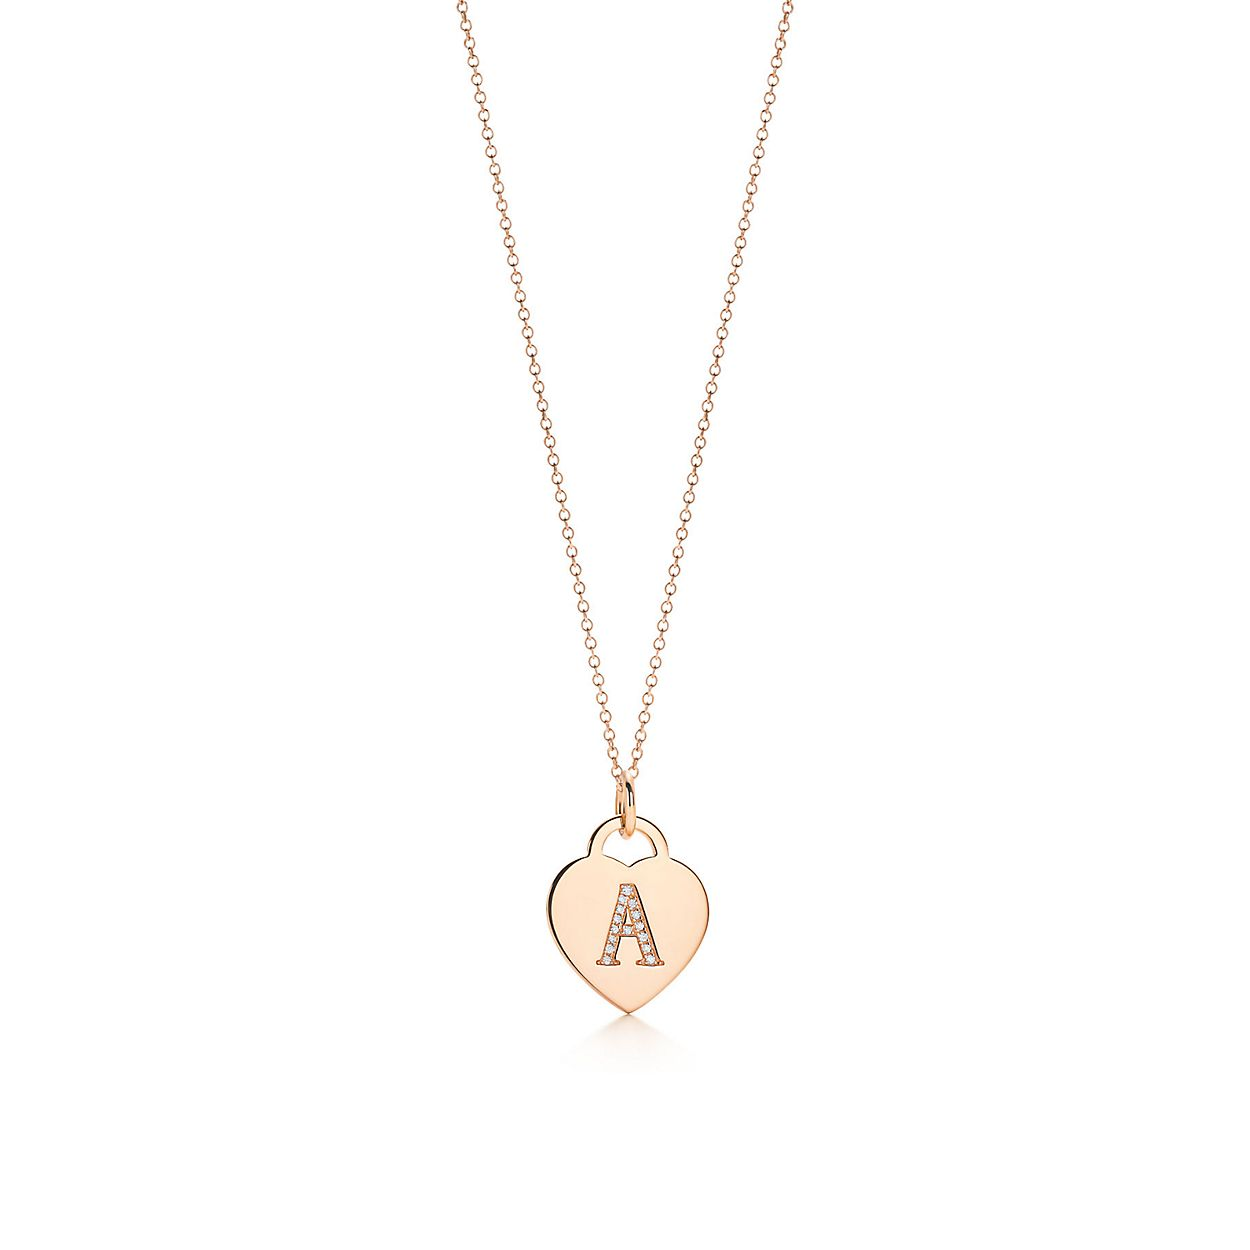 Alphabet heart tag letter L charm in 18k rose gold Letters A-Z available - Size L Tiffany & Co. BFICL7oWZQ